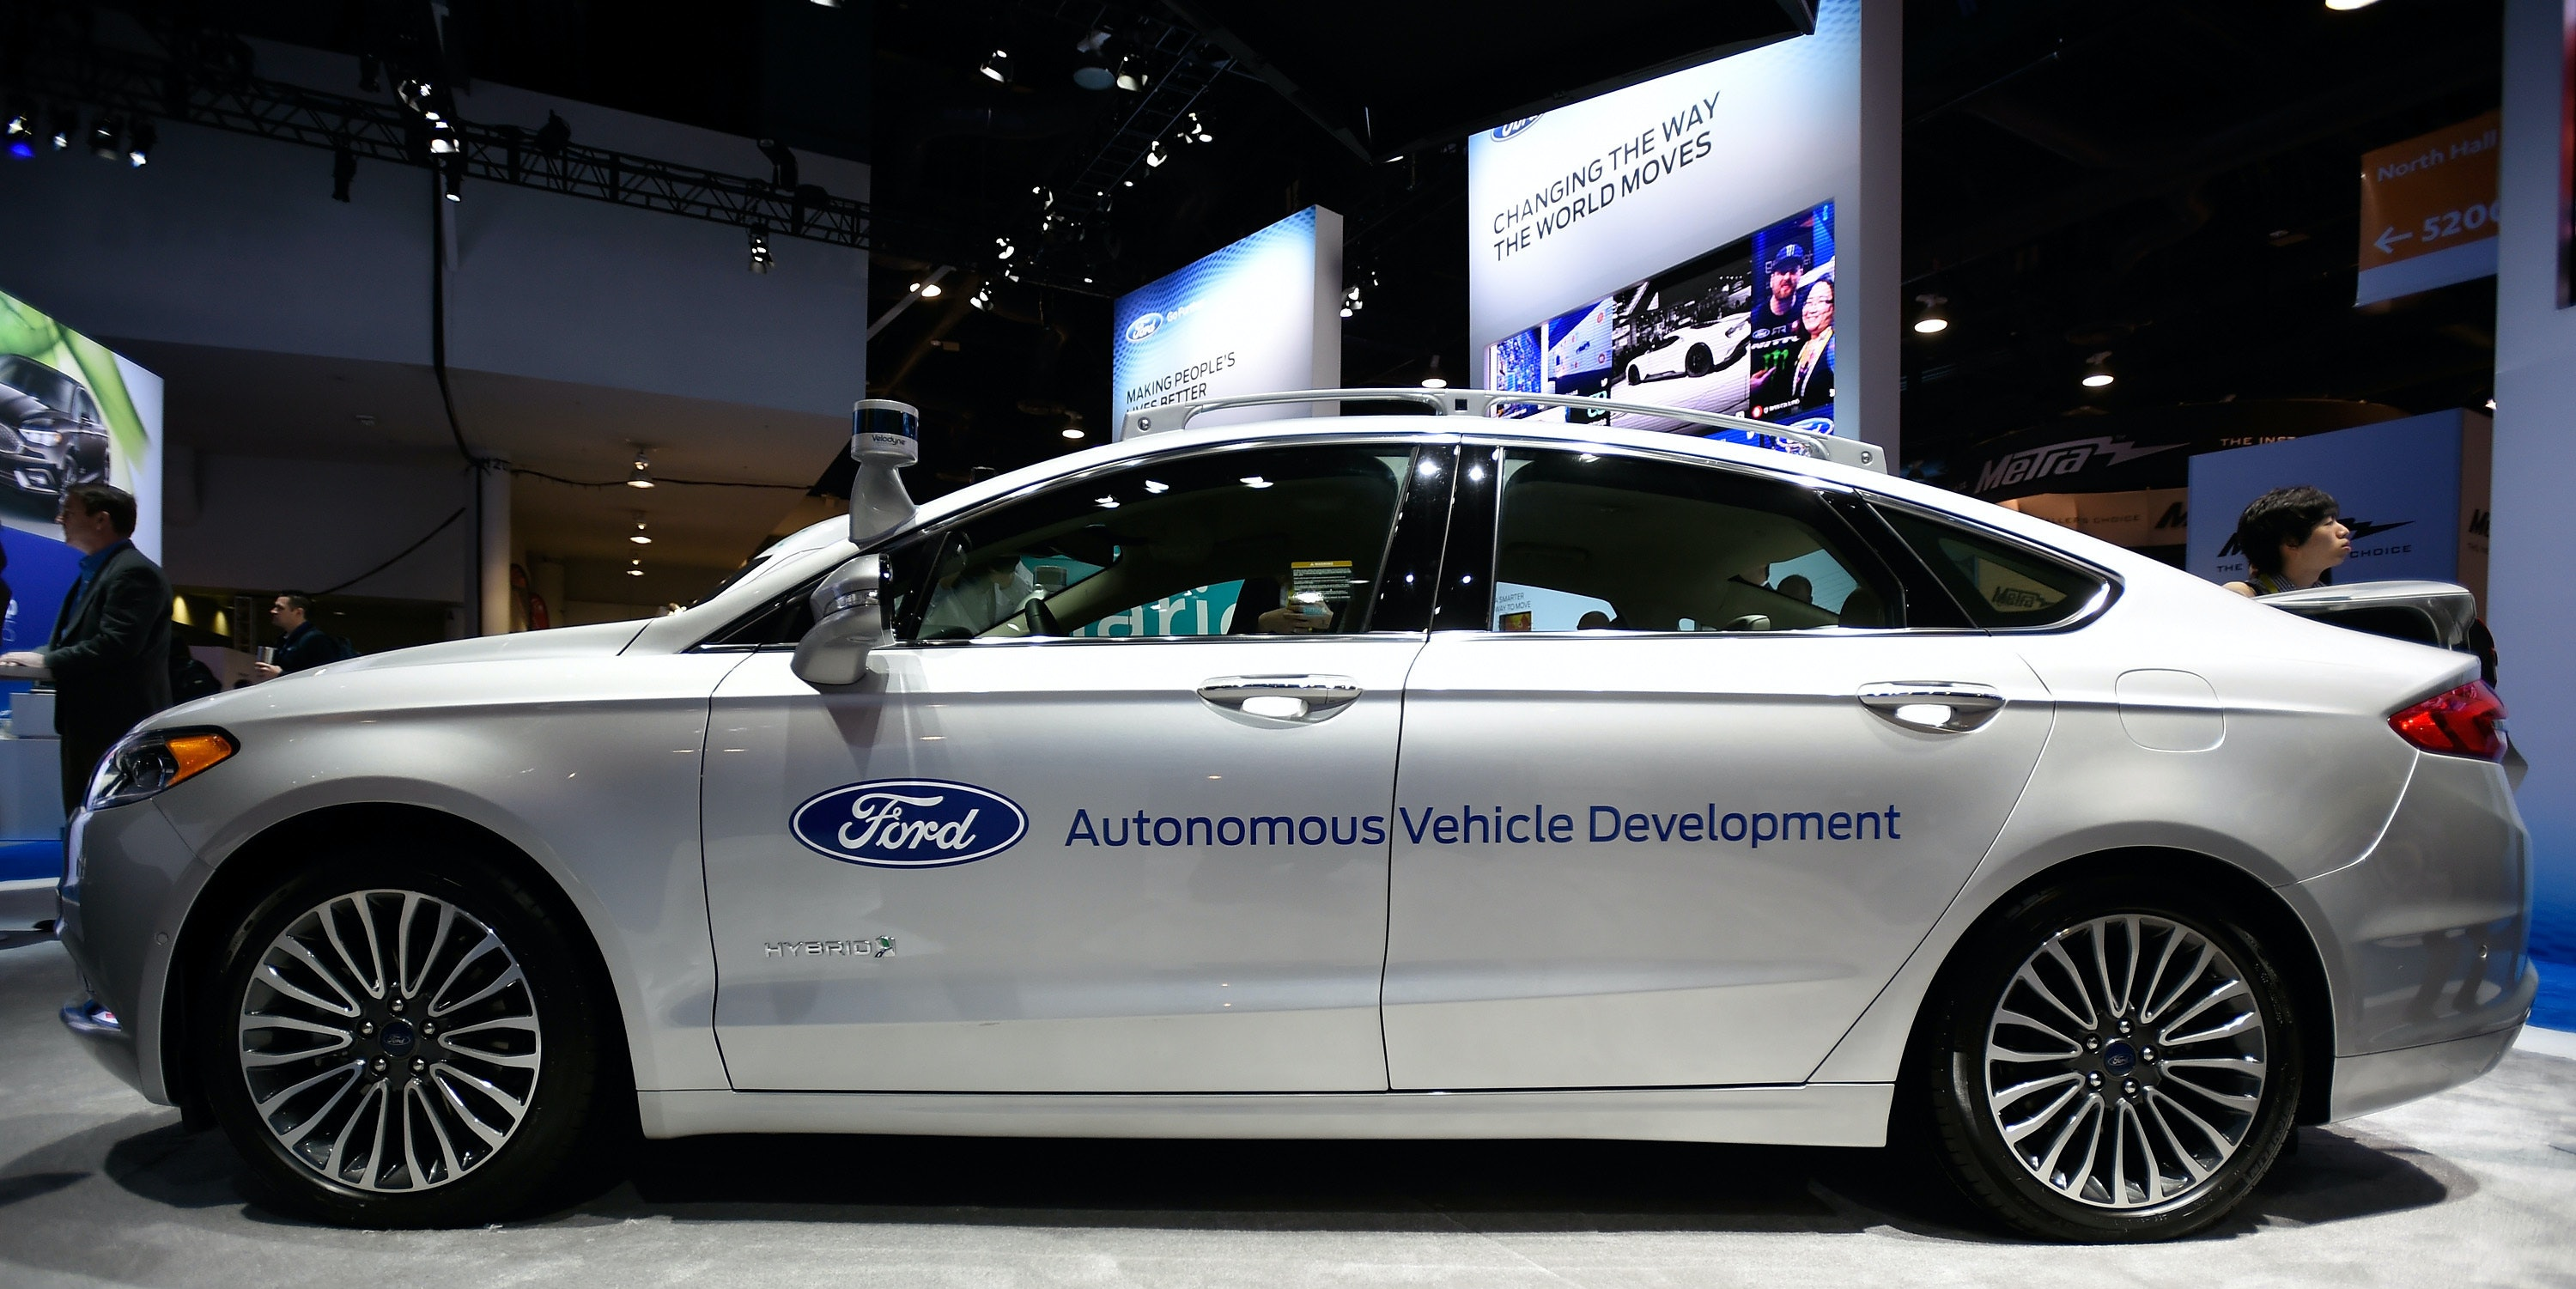 Ford is Going to Spend $1 Billion on Autonomous Car Technology